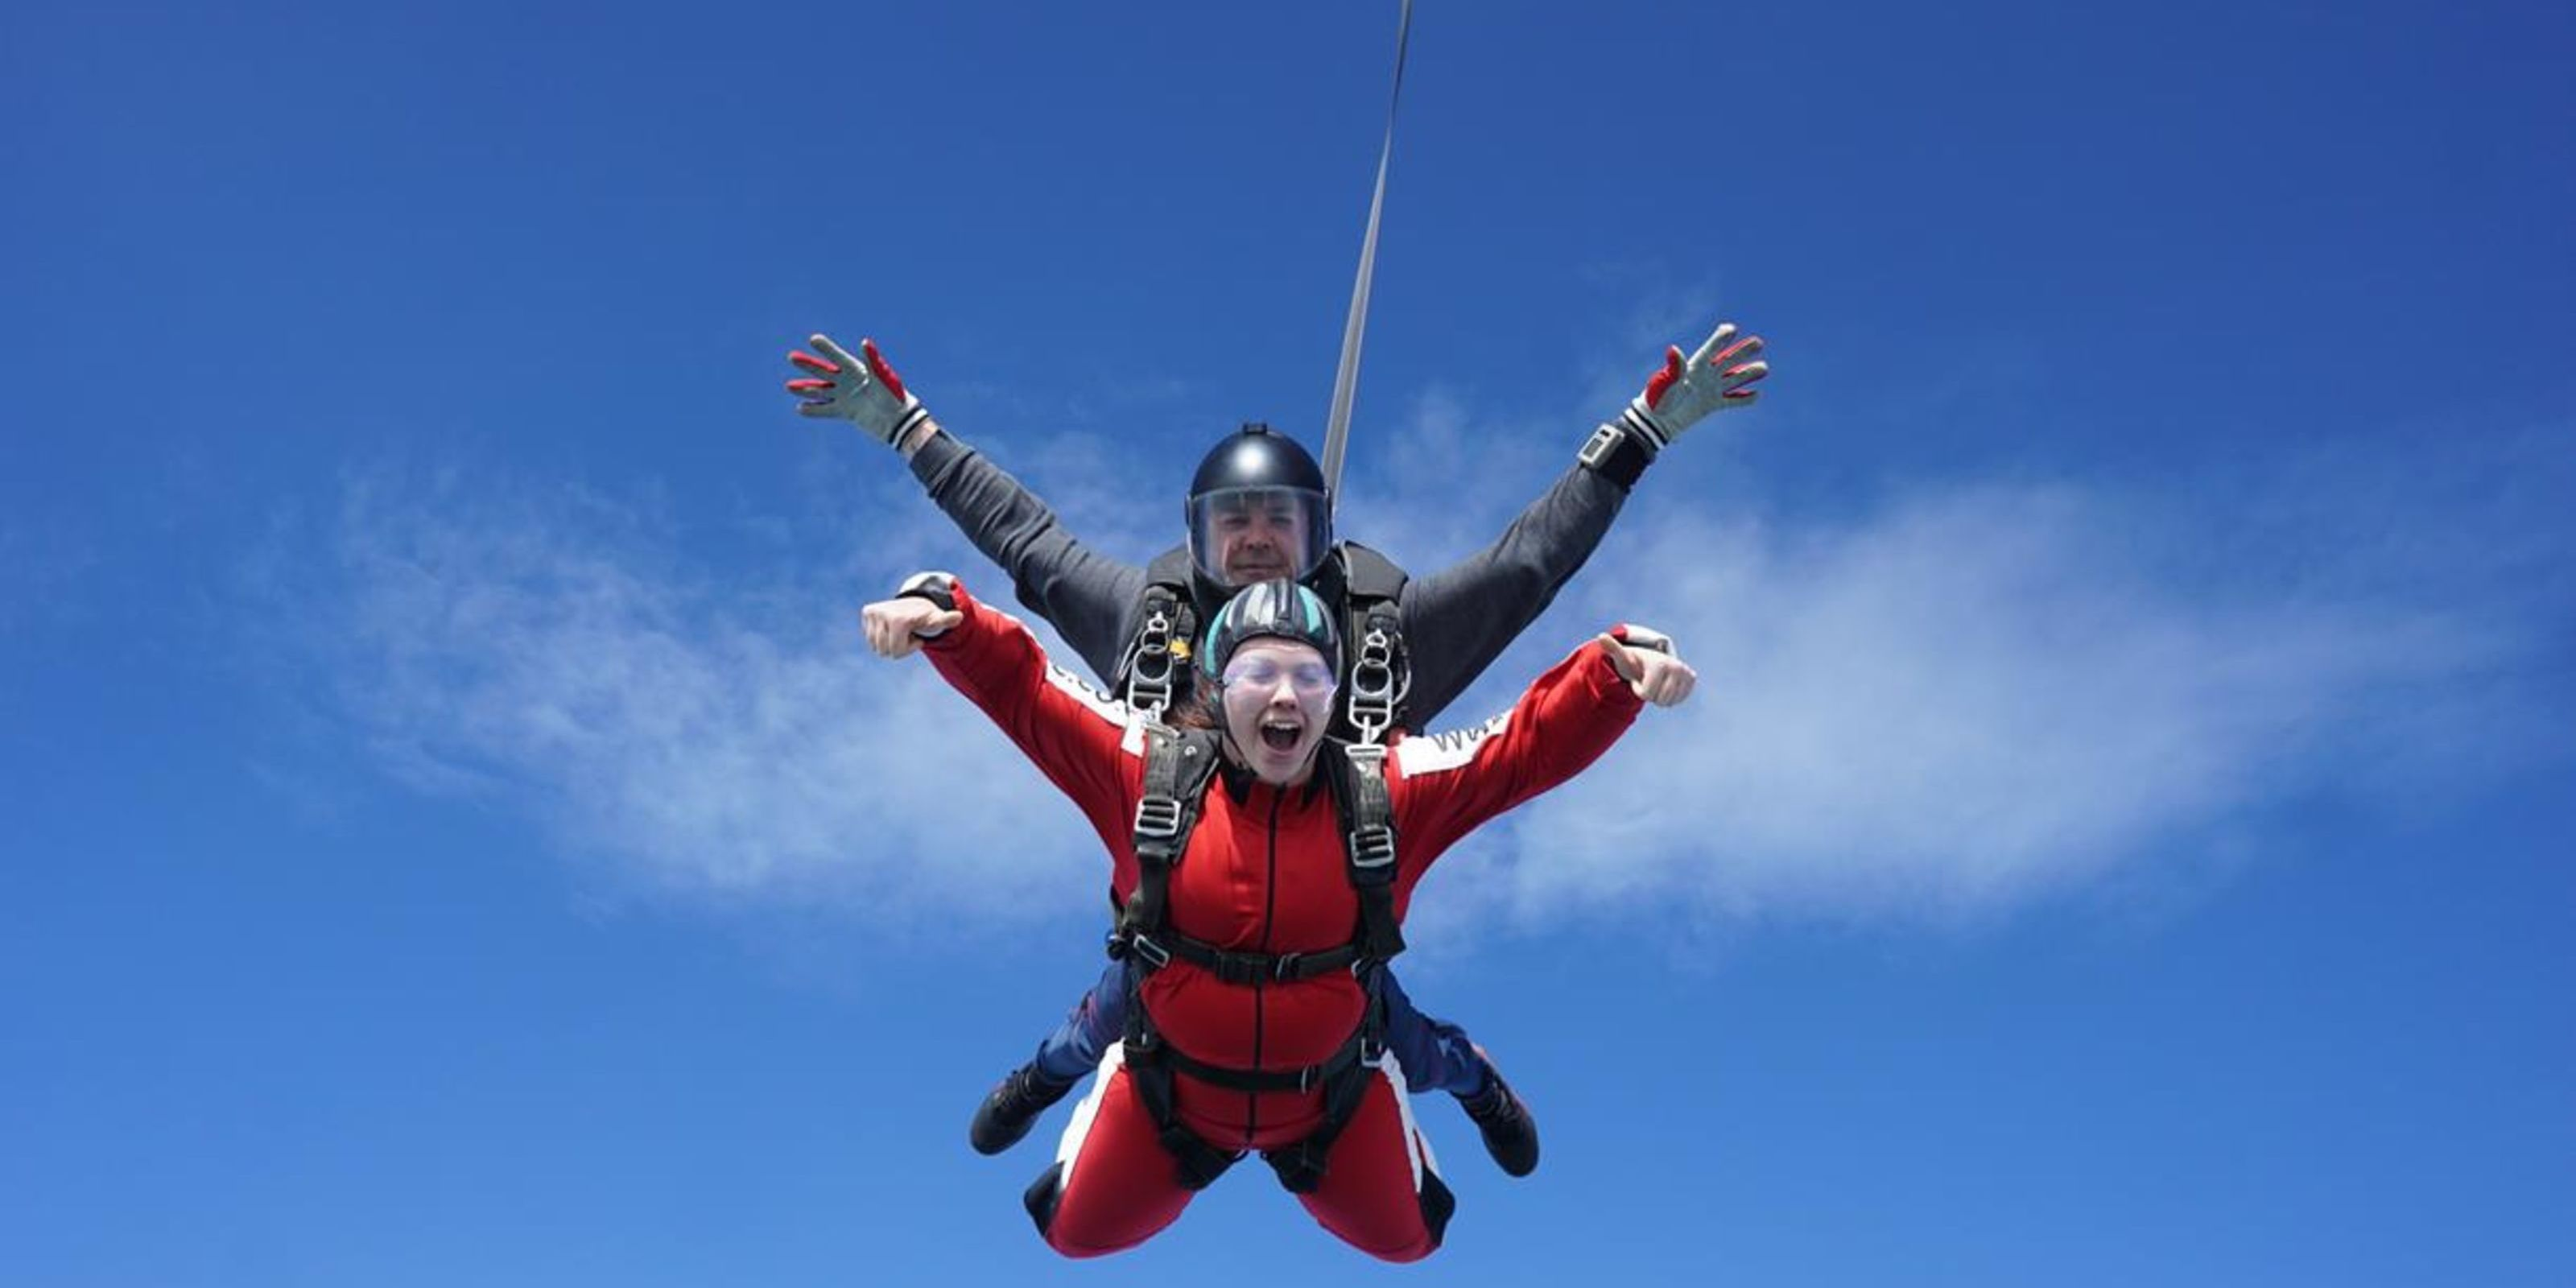 Pendleside Hospice Skydive